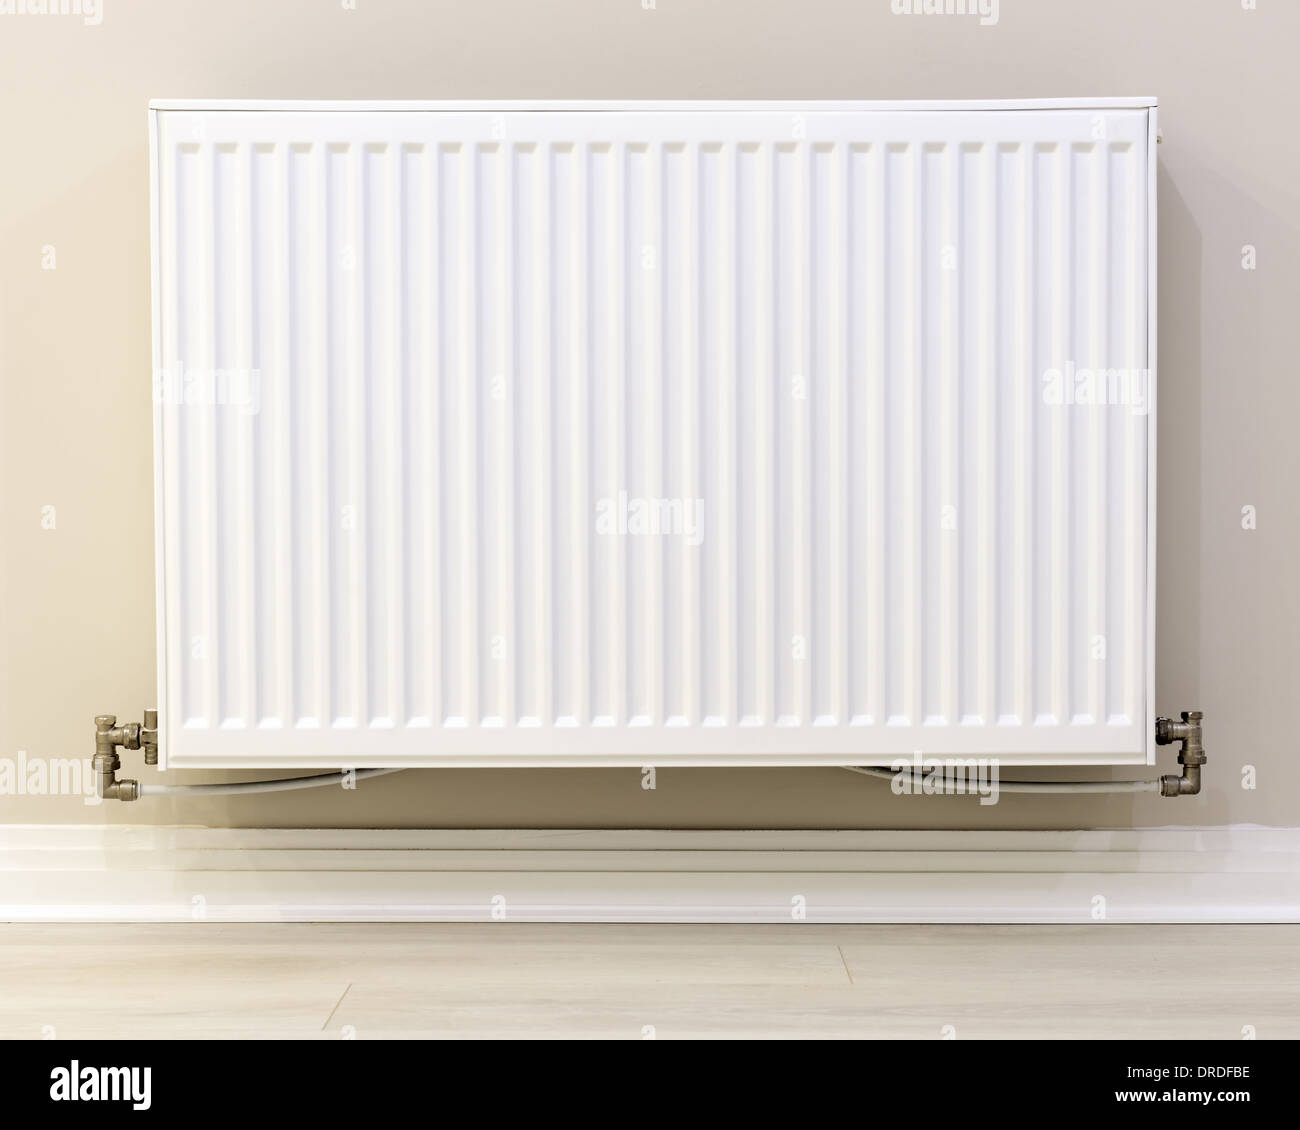 full view of a white radiator against a cream wall - Stock Image